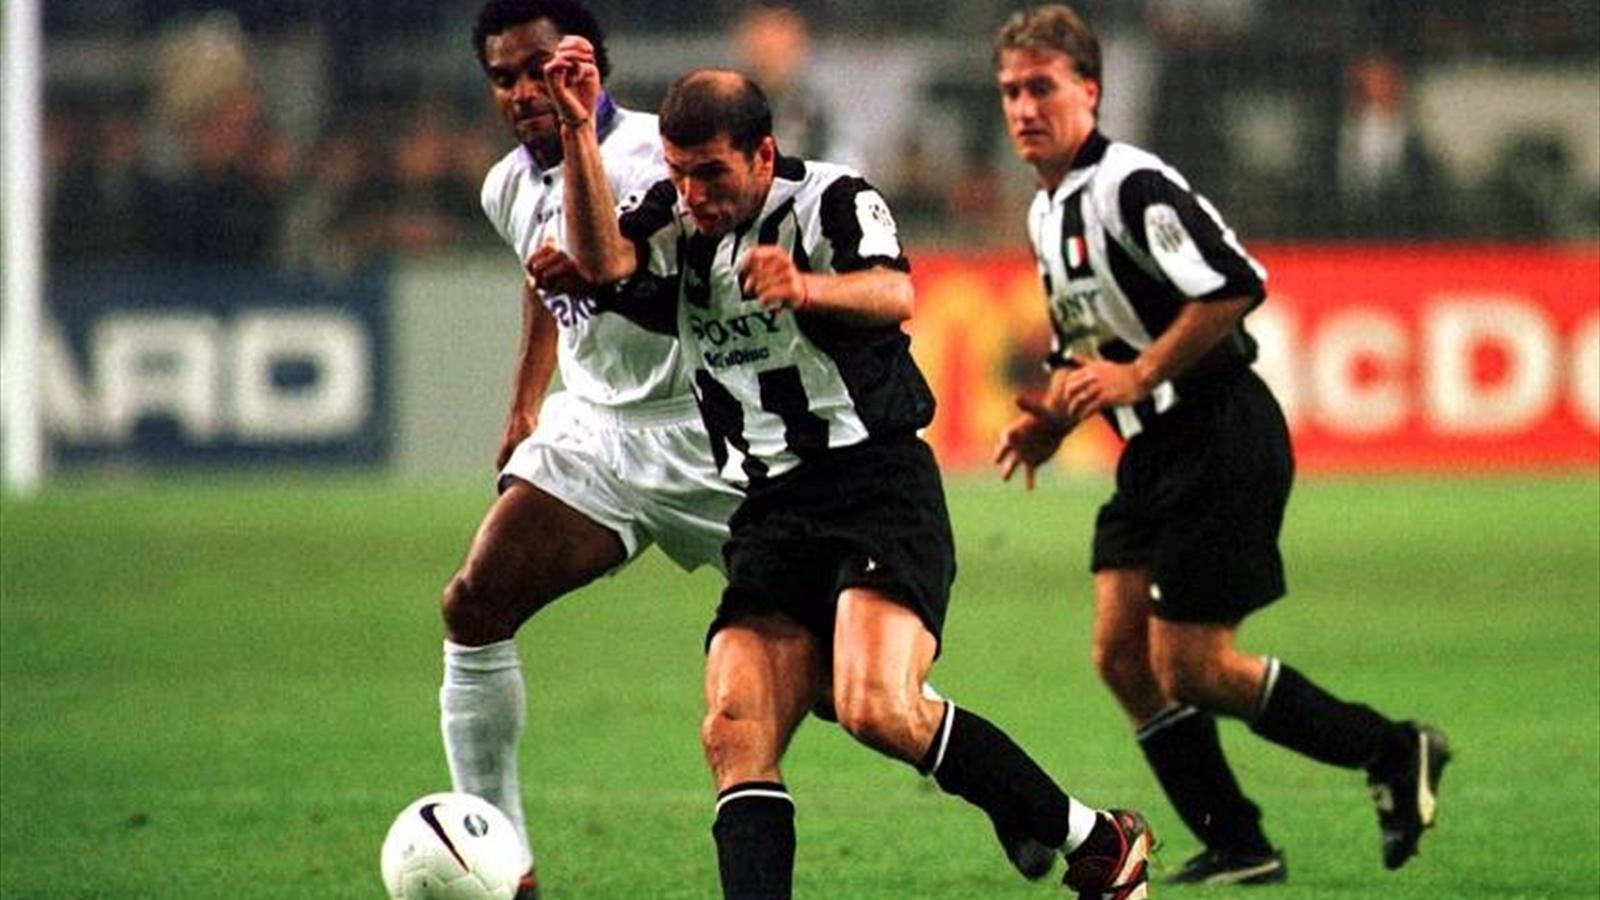 FOOTBALL 1998 Champions Juventus Real Madrid Zidane Karembeu Deschamps